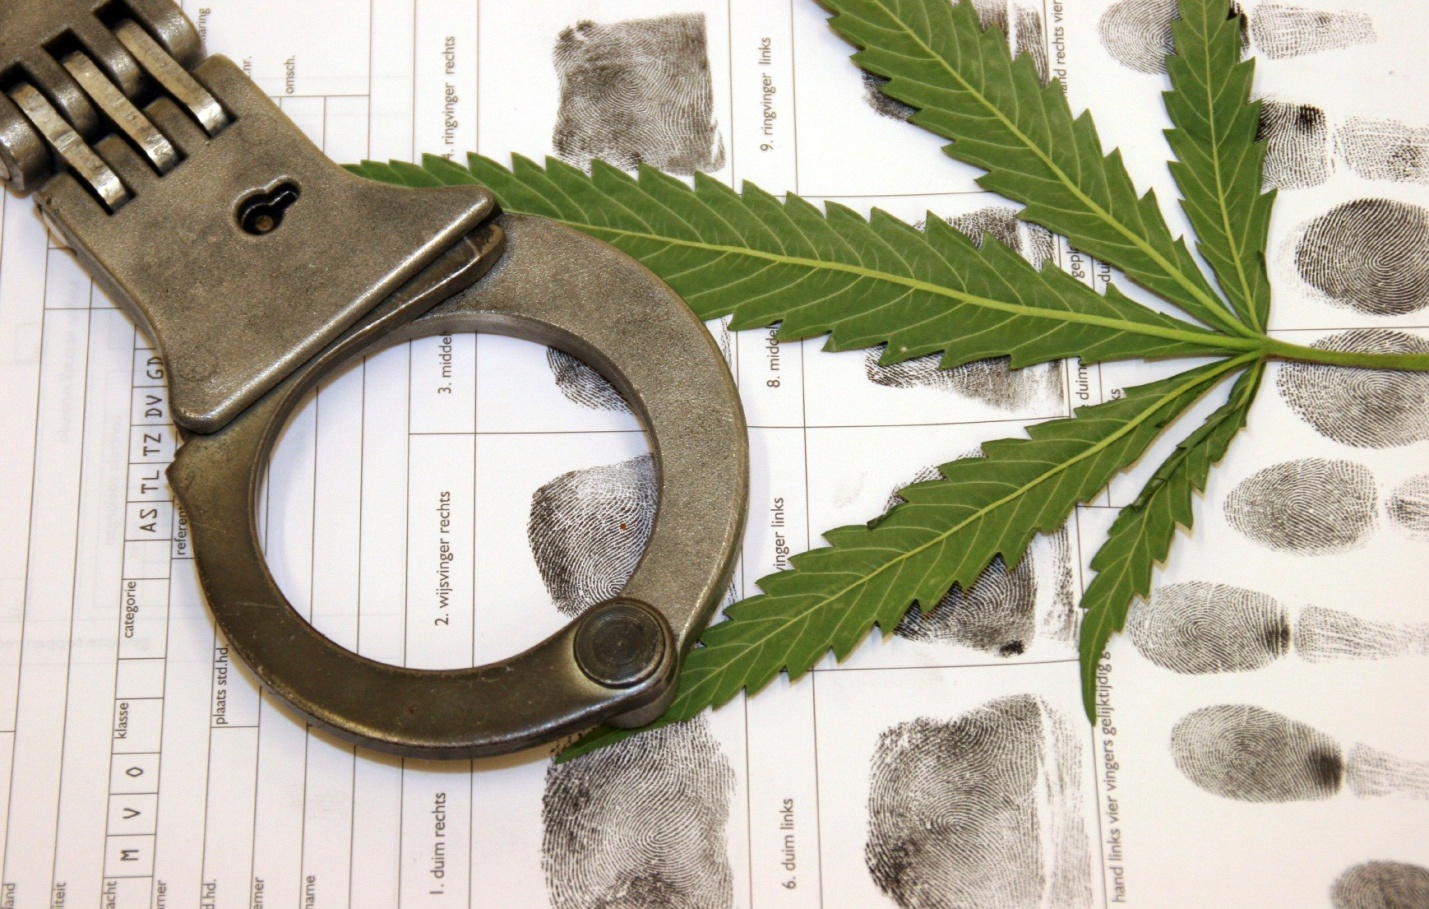 Crimes under the influence of marijuana